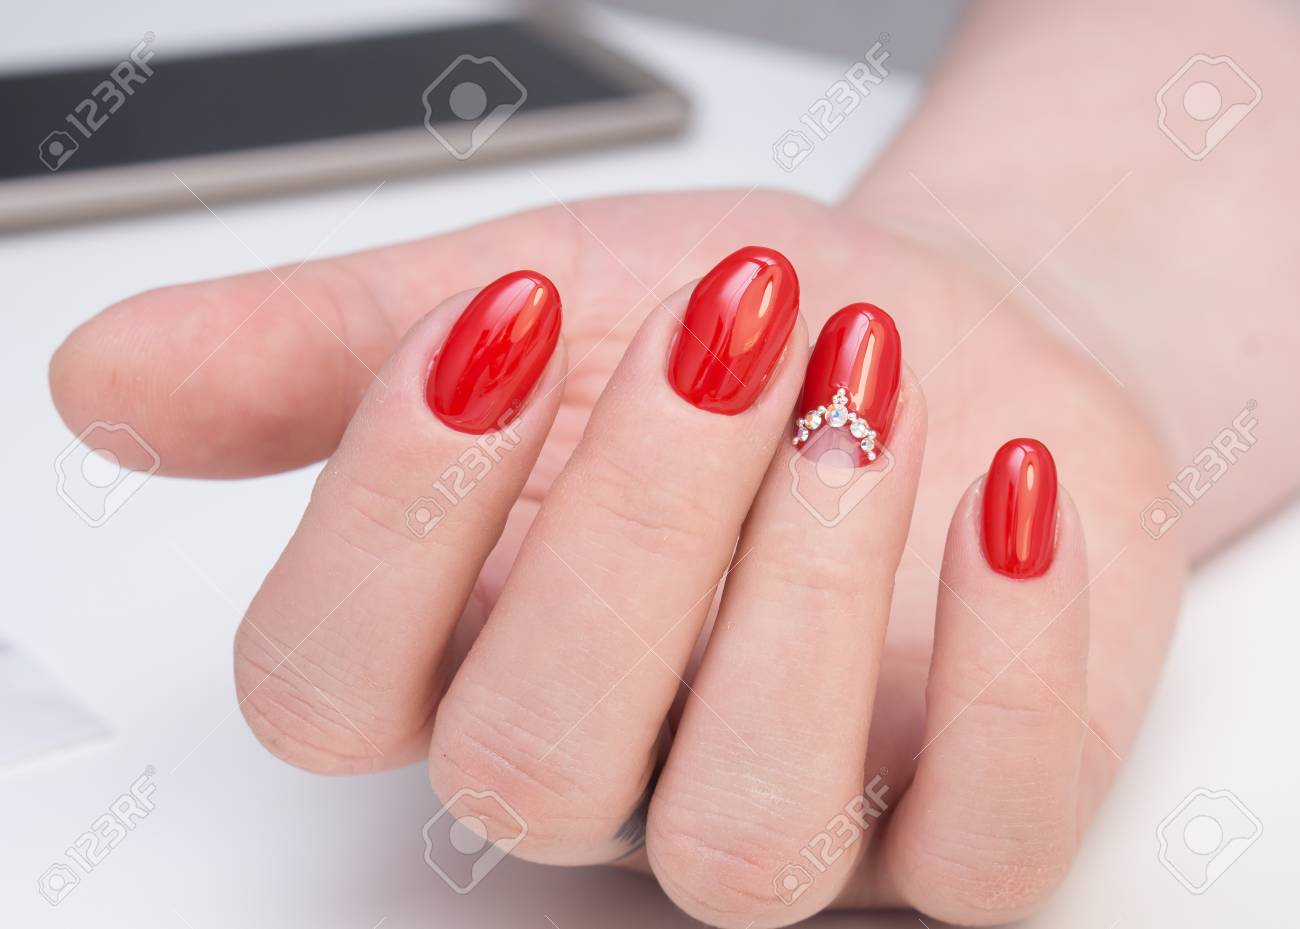 Amazing Manicure And Natural Nails With Gel Polish. Attractive ...